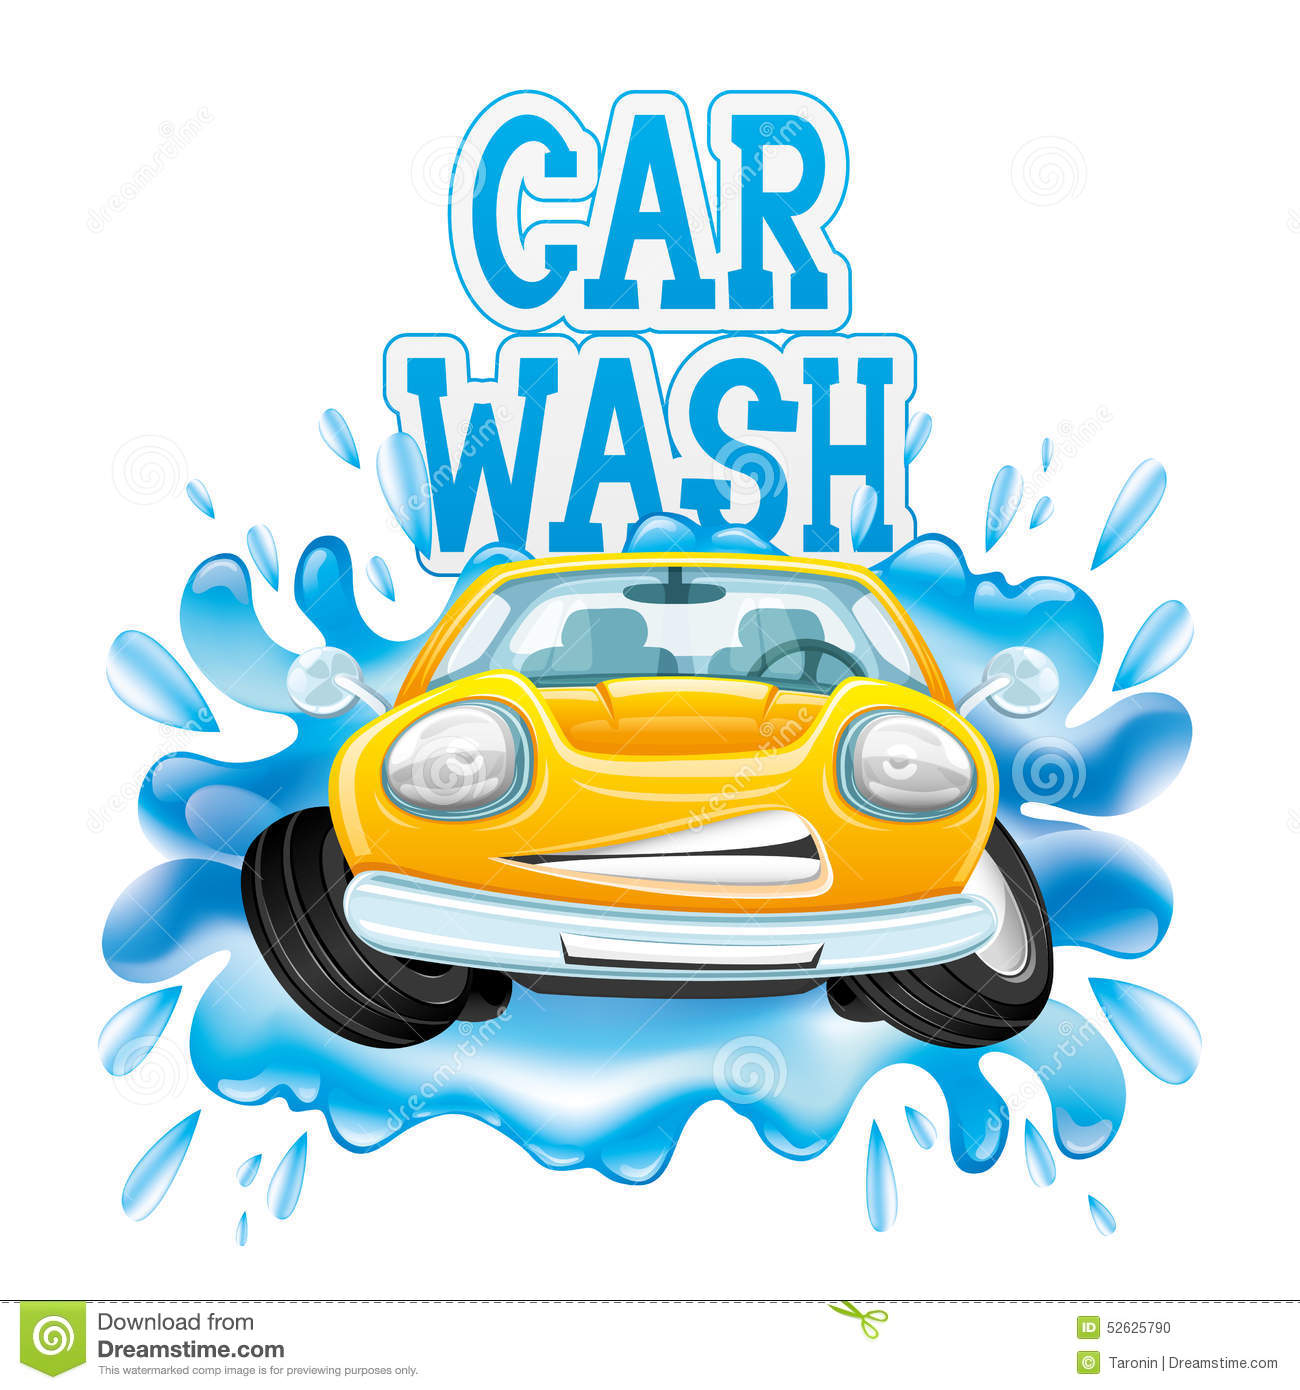 Clipart of car wash clipground for Clean car pictures